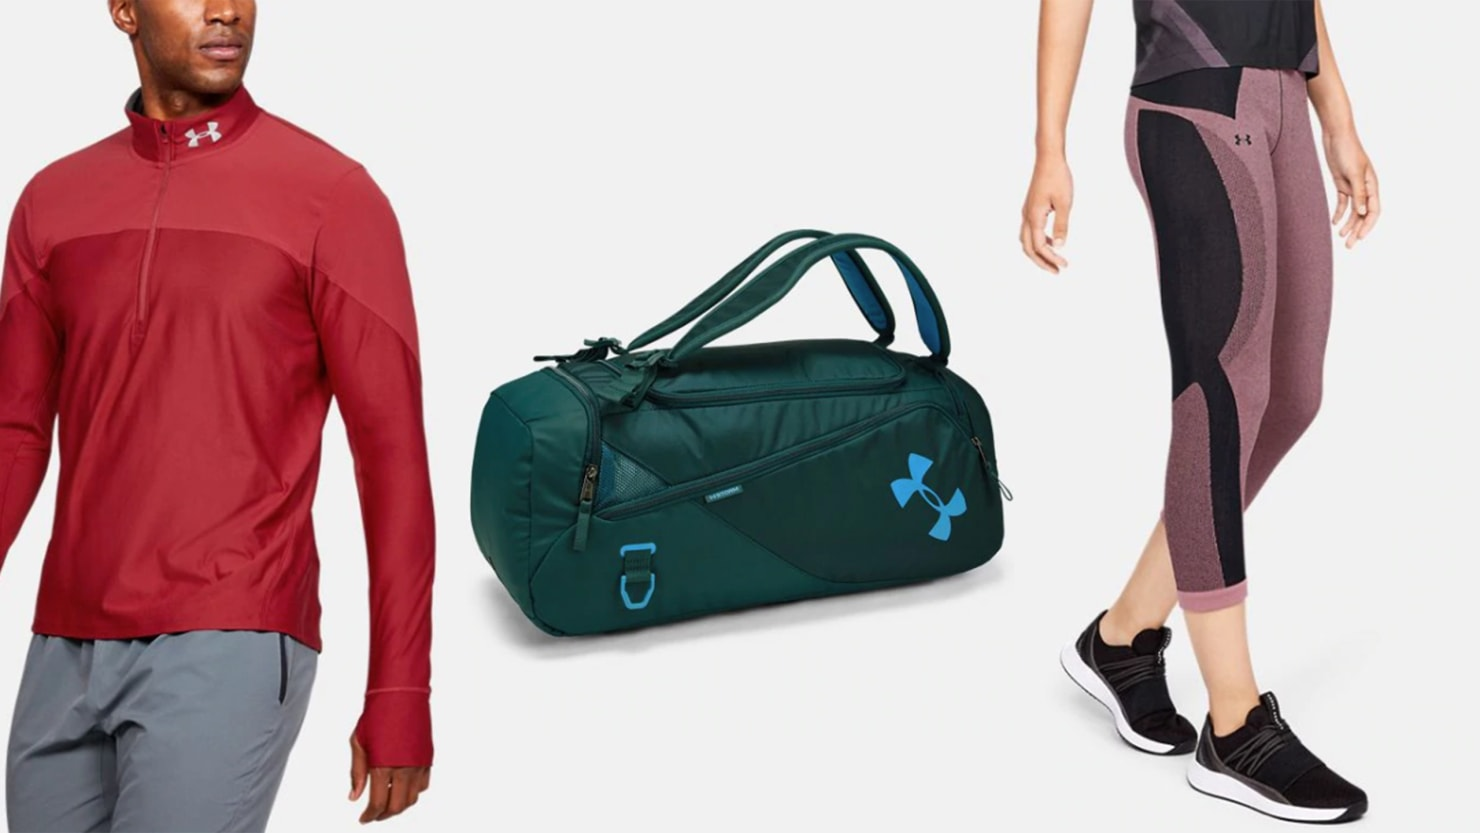 Get an Extra 20% Off Nearly 2,000 Under Armour Sale Items From Compression Apparel to Accessories